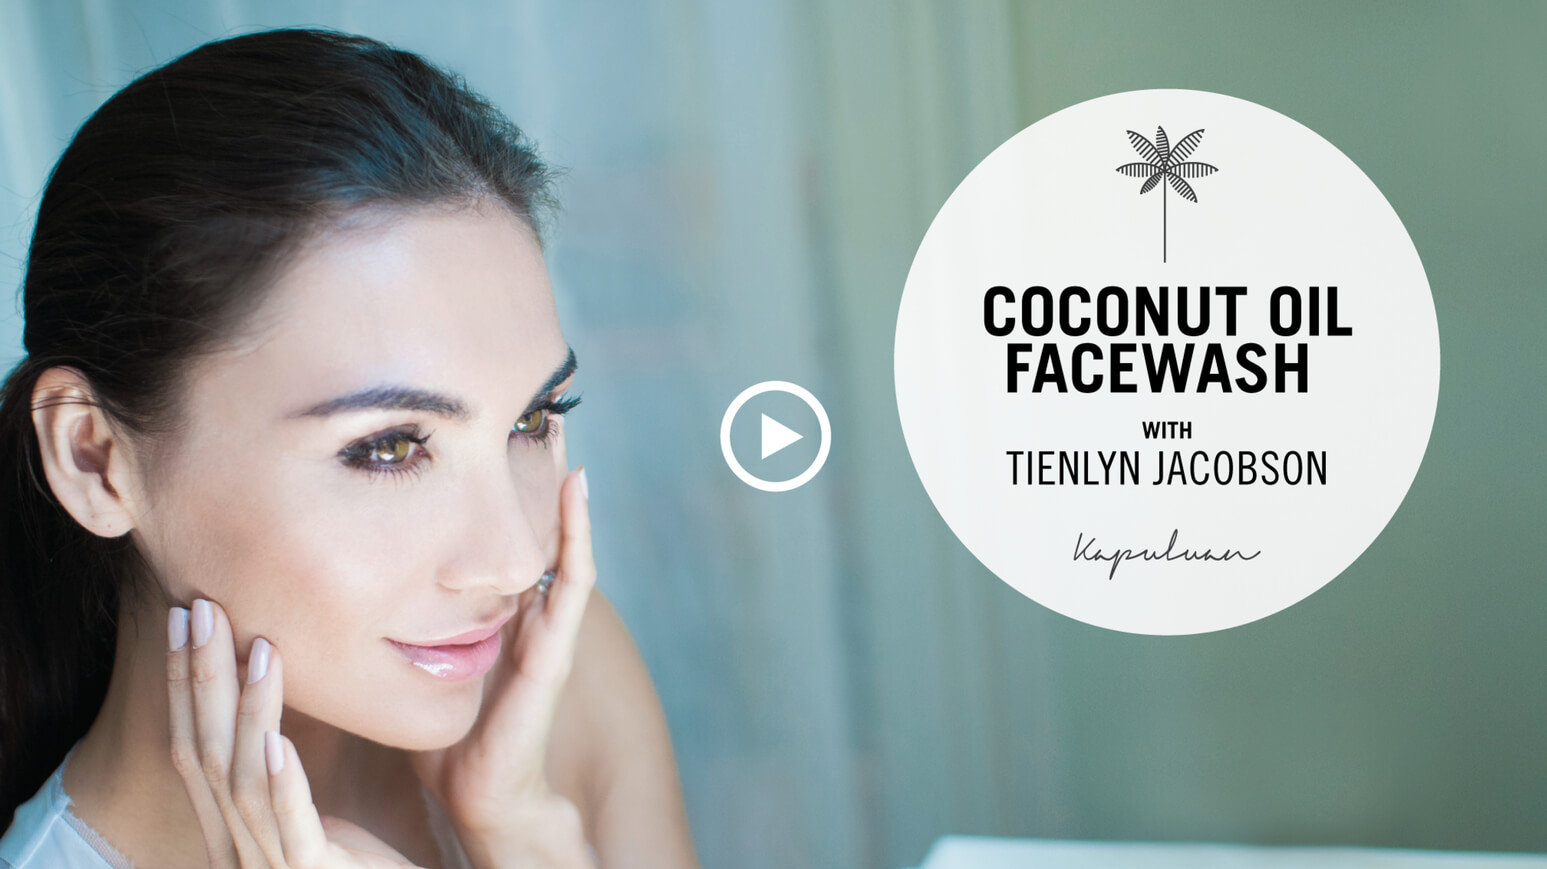 Kapuluan Coconut Oil Facewash with Tienlyn Jacobson